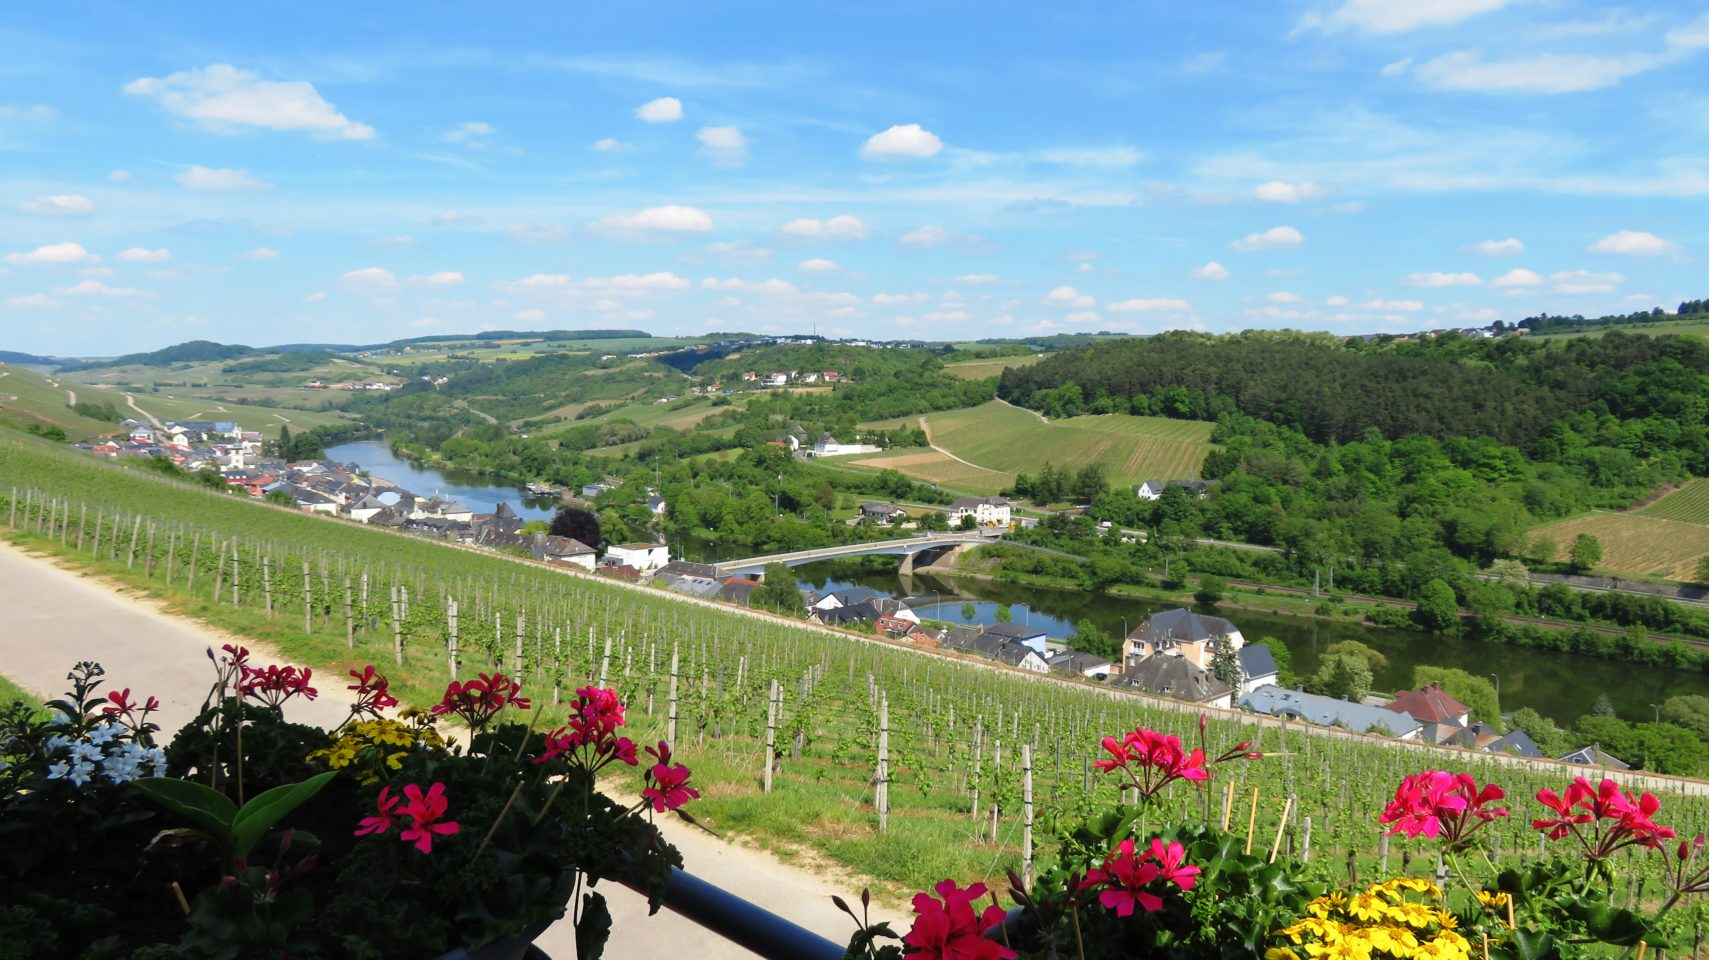 Pundel vineyard along the Moselle River in <em><strong>Luxembourg</strong></em>